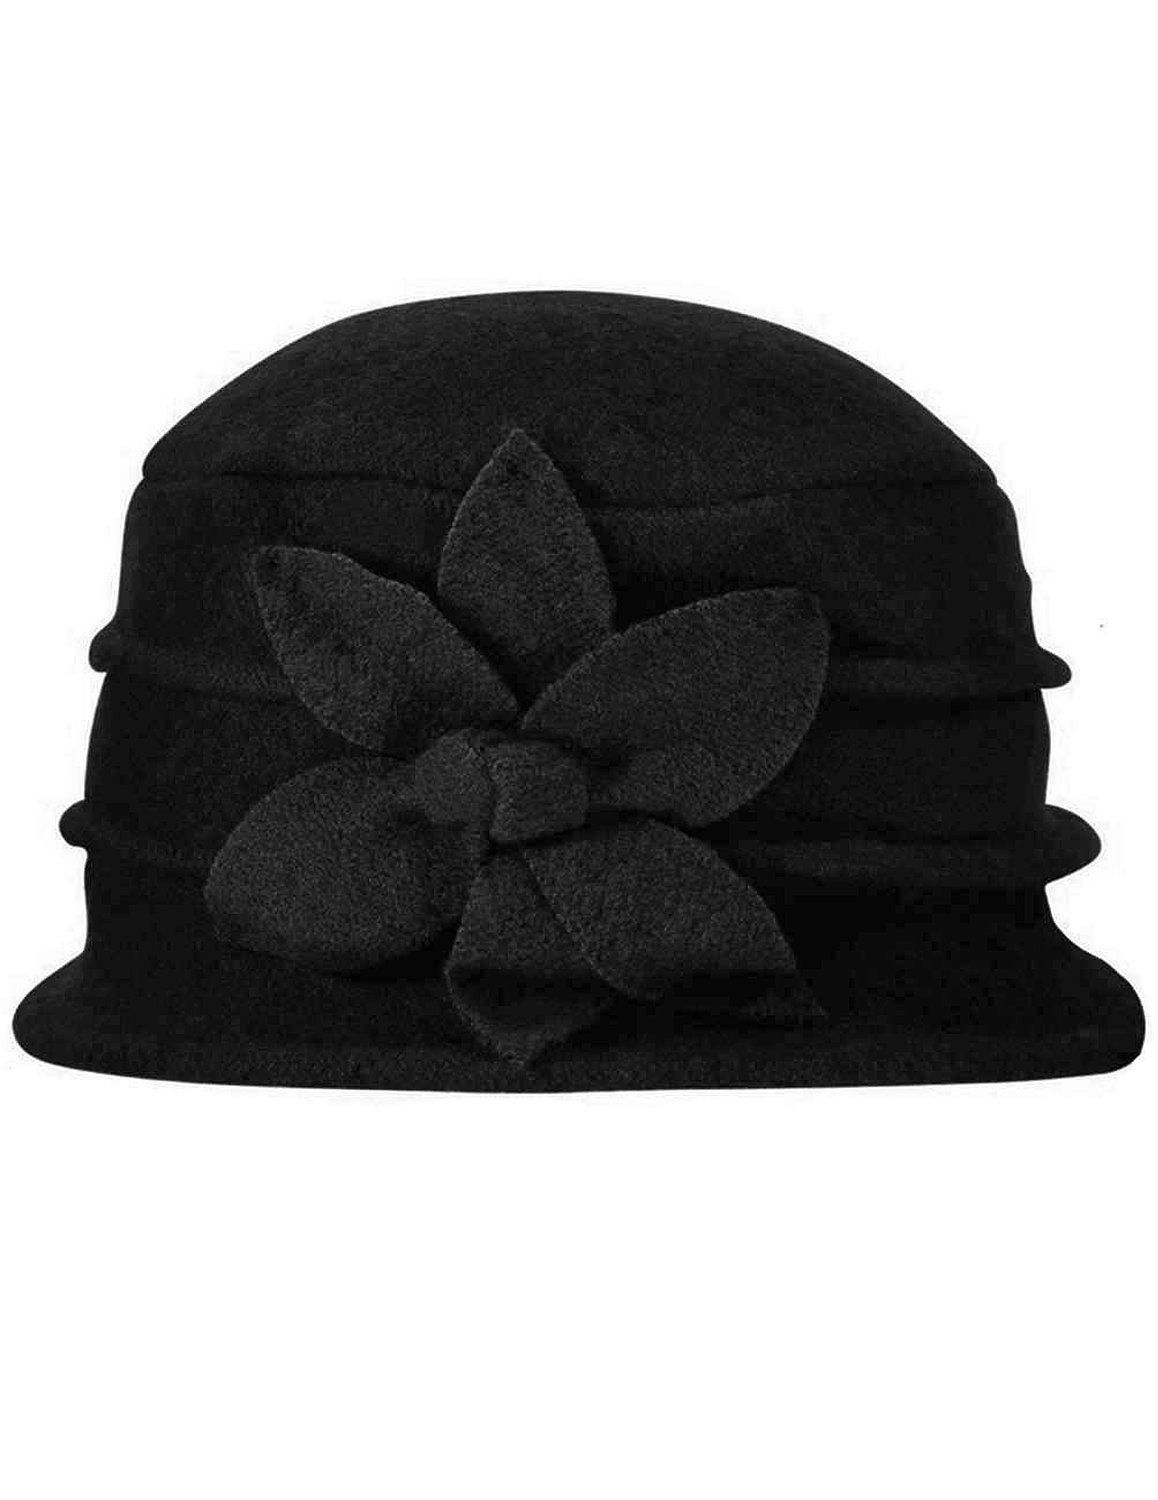 c26b1e03cf4 Dahlia Women s Daisy Flower Wool Cloche Bucket Hat - Black at Amazon Women s  Clothing store